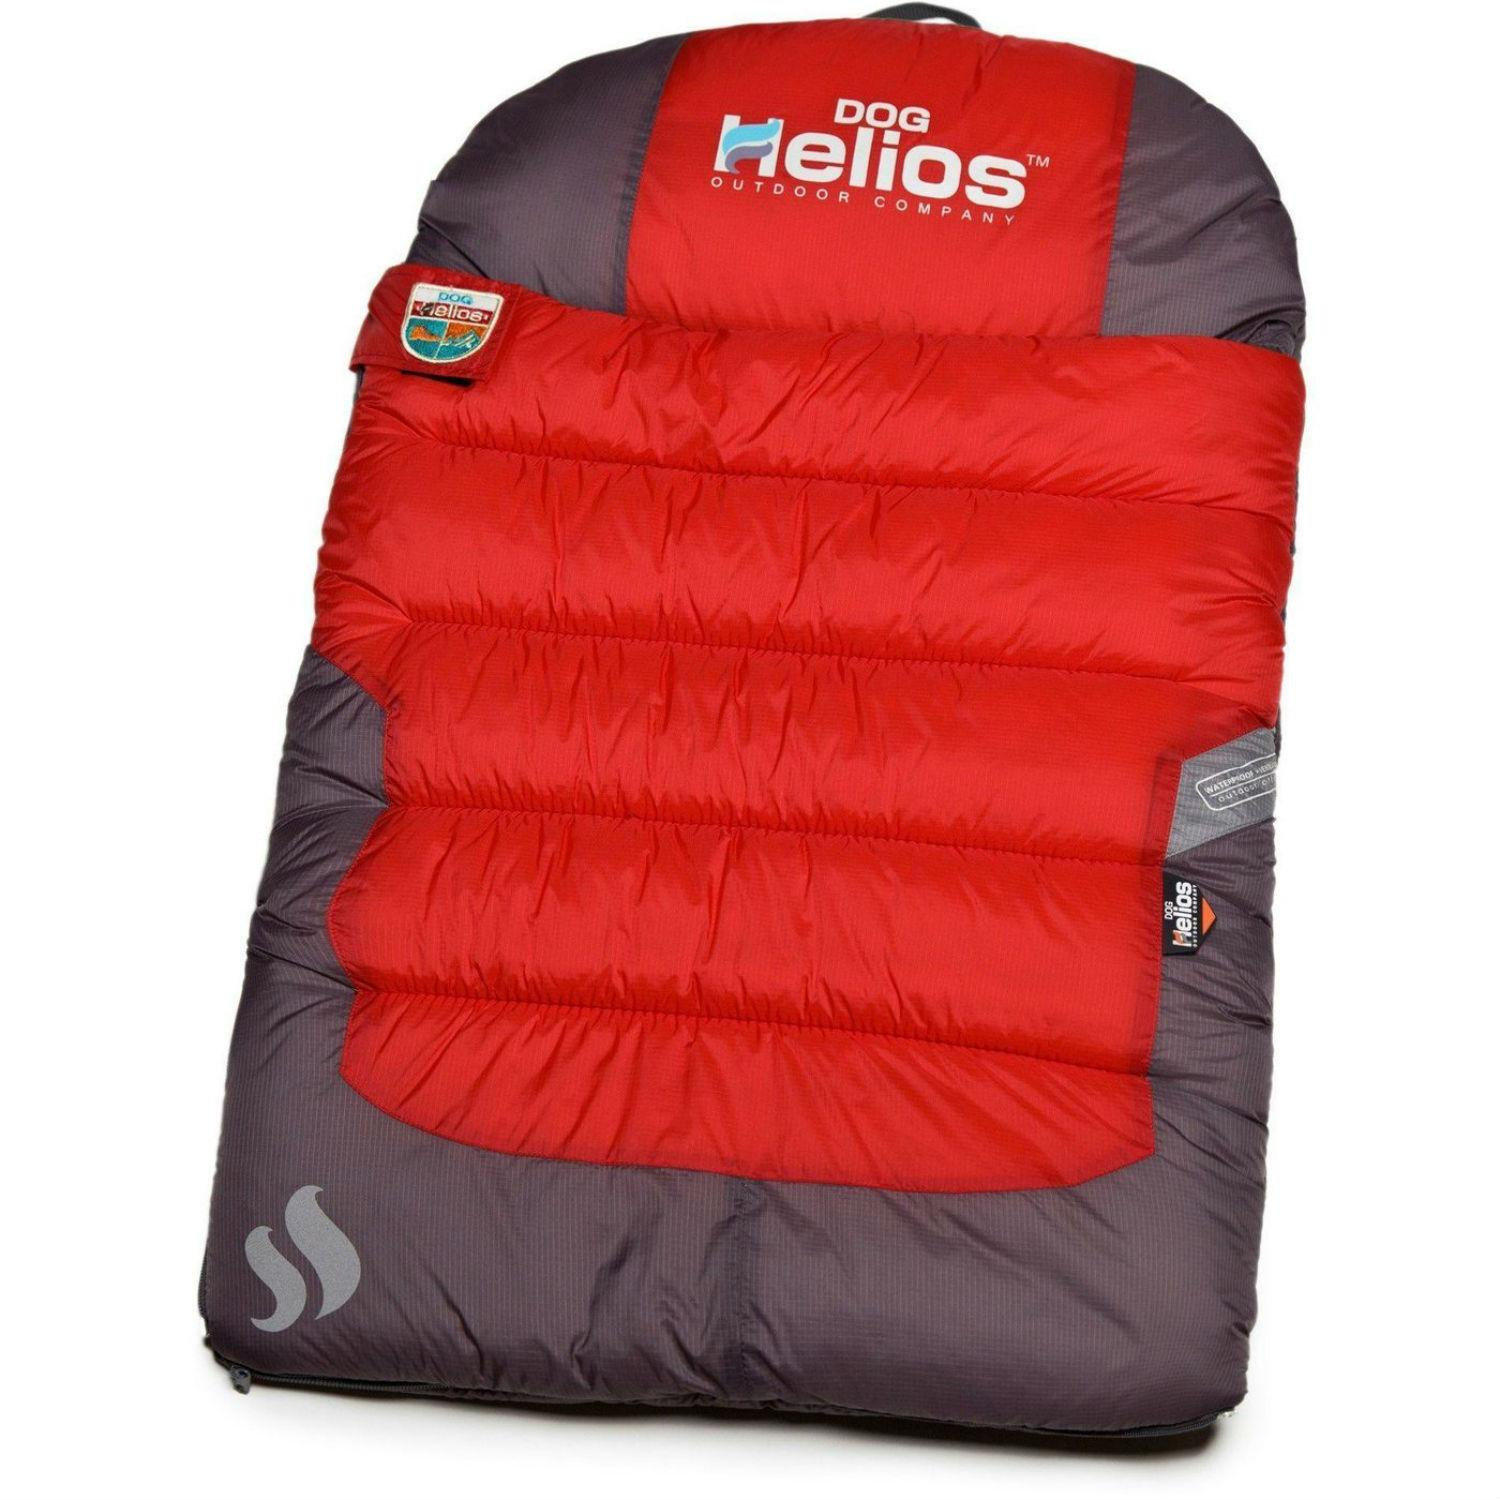 Pet Life Helios Trail-Barker Travel Camping Dog Bed - Red